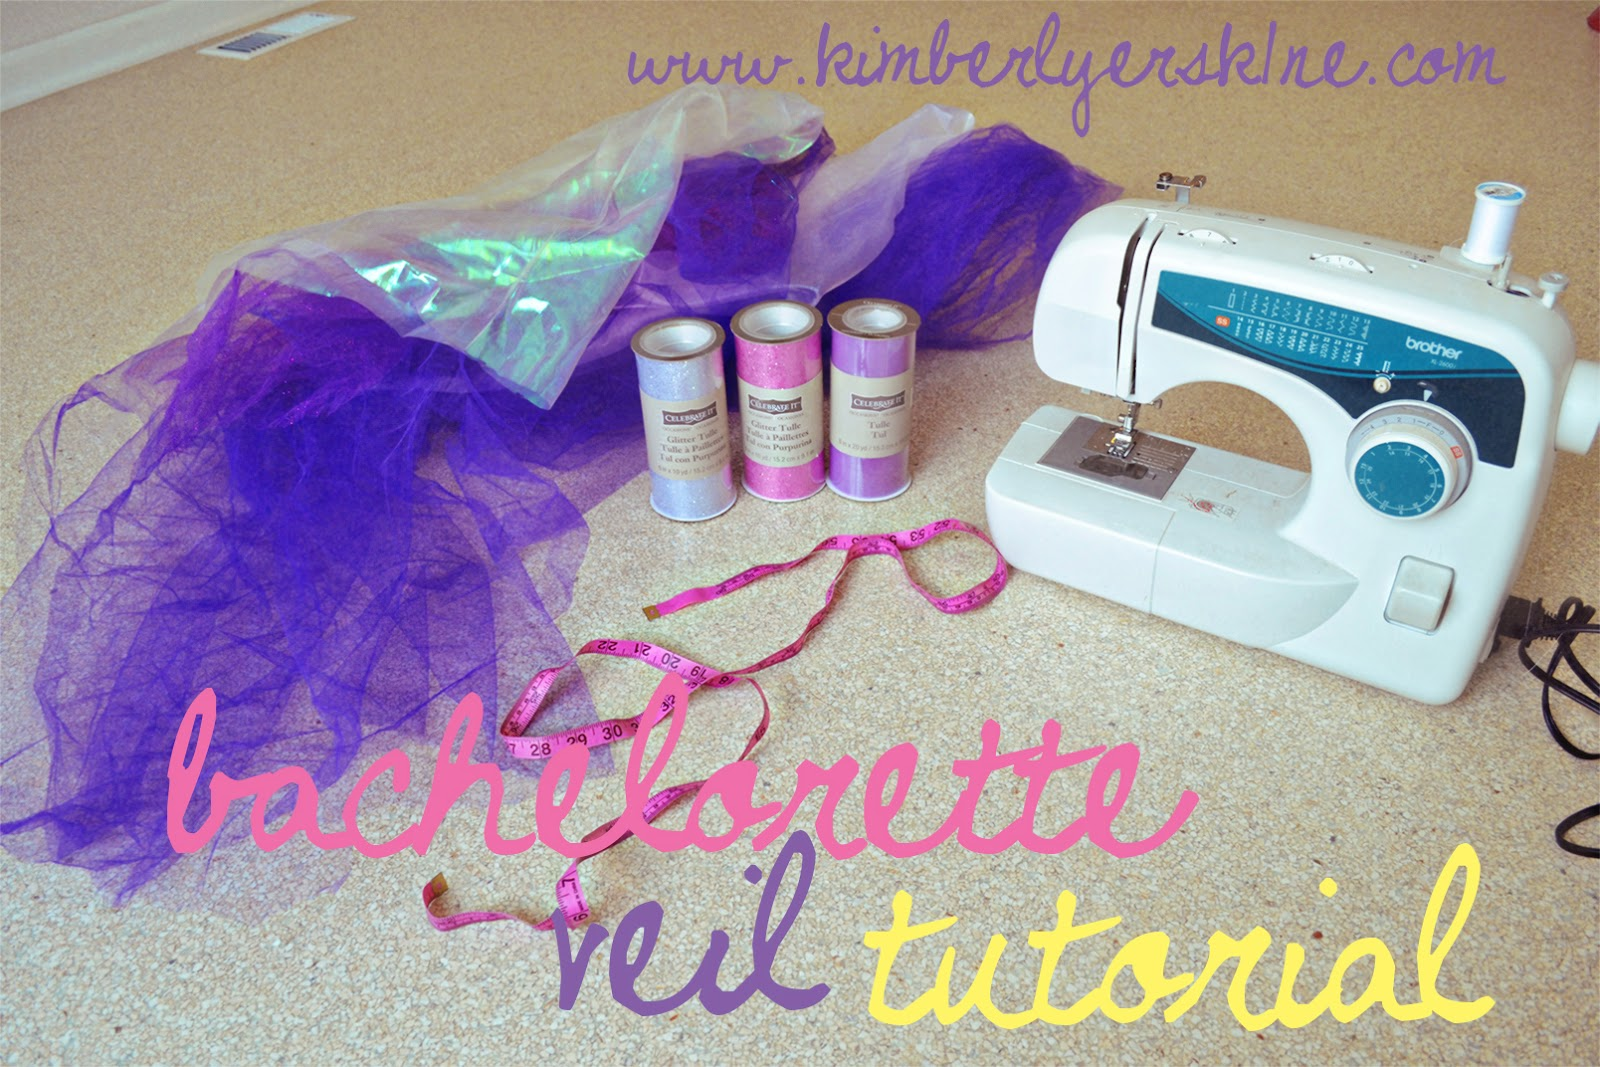 As The Bachelorette Party Series Continues I M Sharing My Next Diy Tuorial On How To Make A Fun And Sy Veil